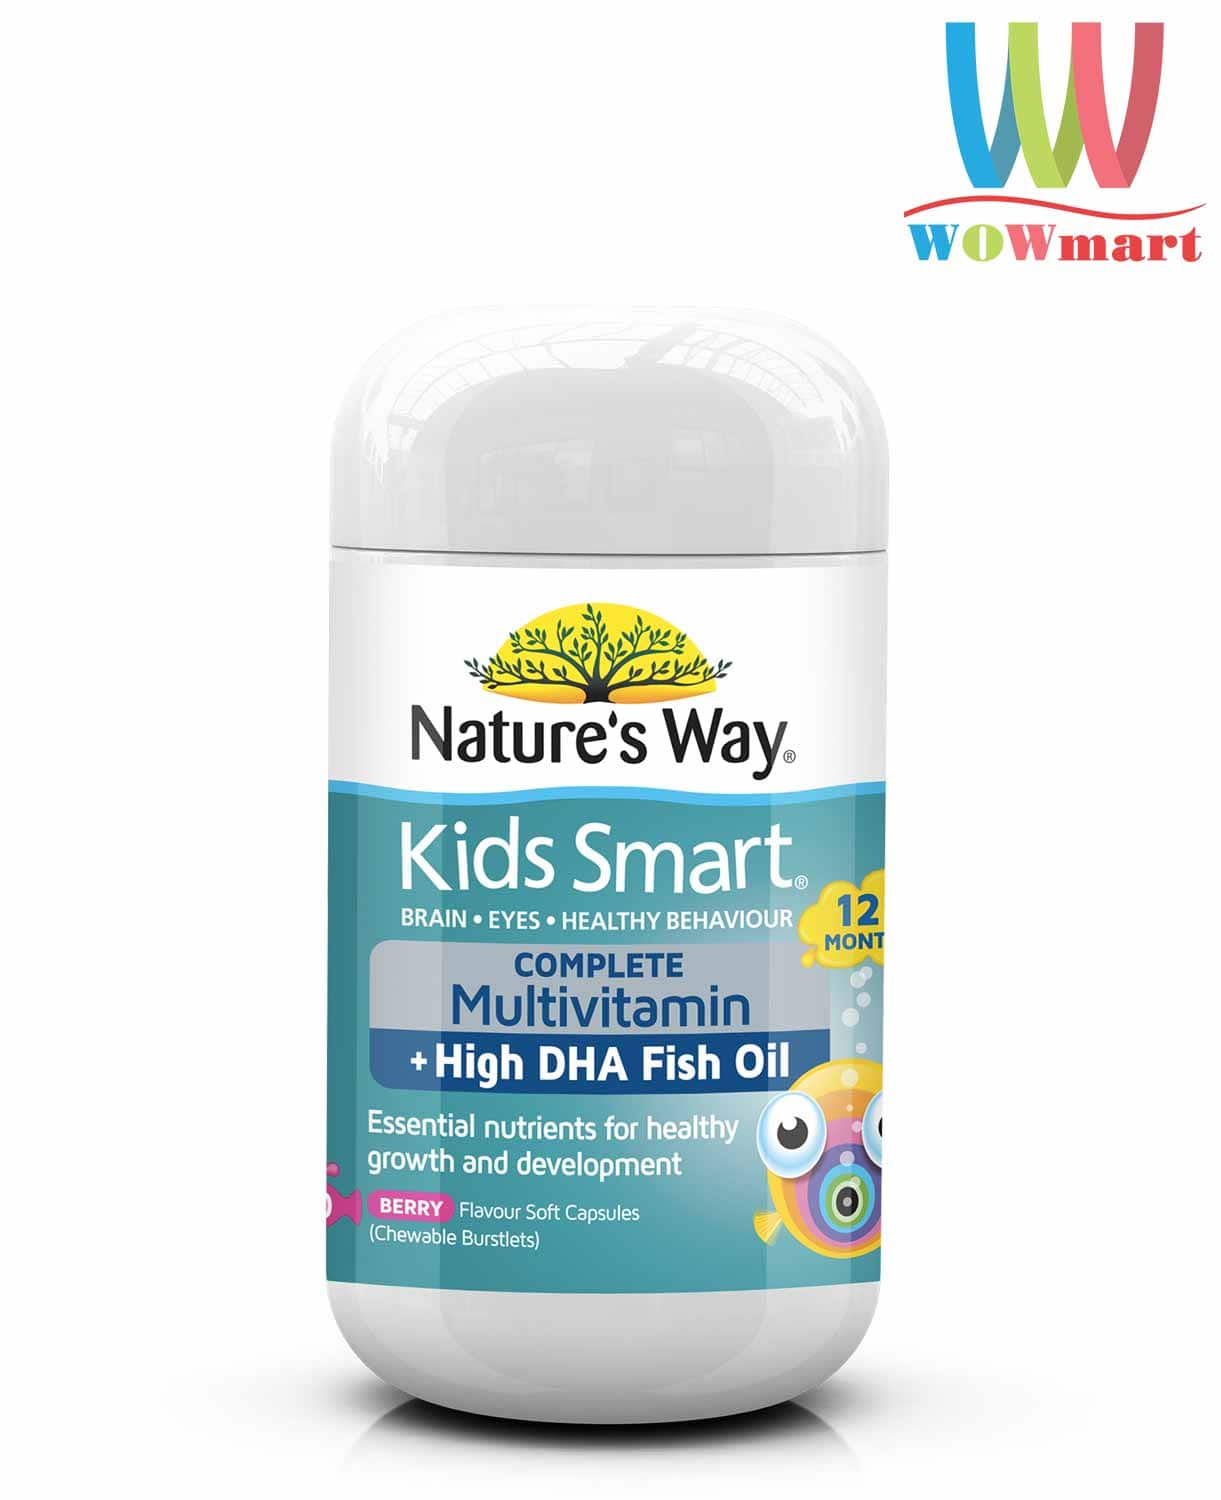 keo-deo-bo-sung-vitamin-va-dau-ca-cho-tre-phat-trien-tri-nao-natures-way-kids-smart-complete-multivitamin-fish-oil